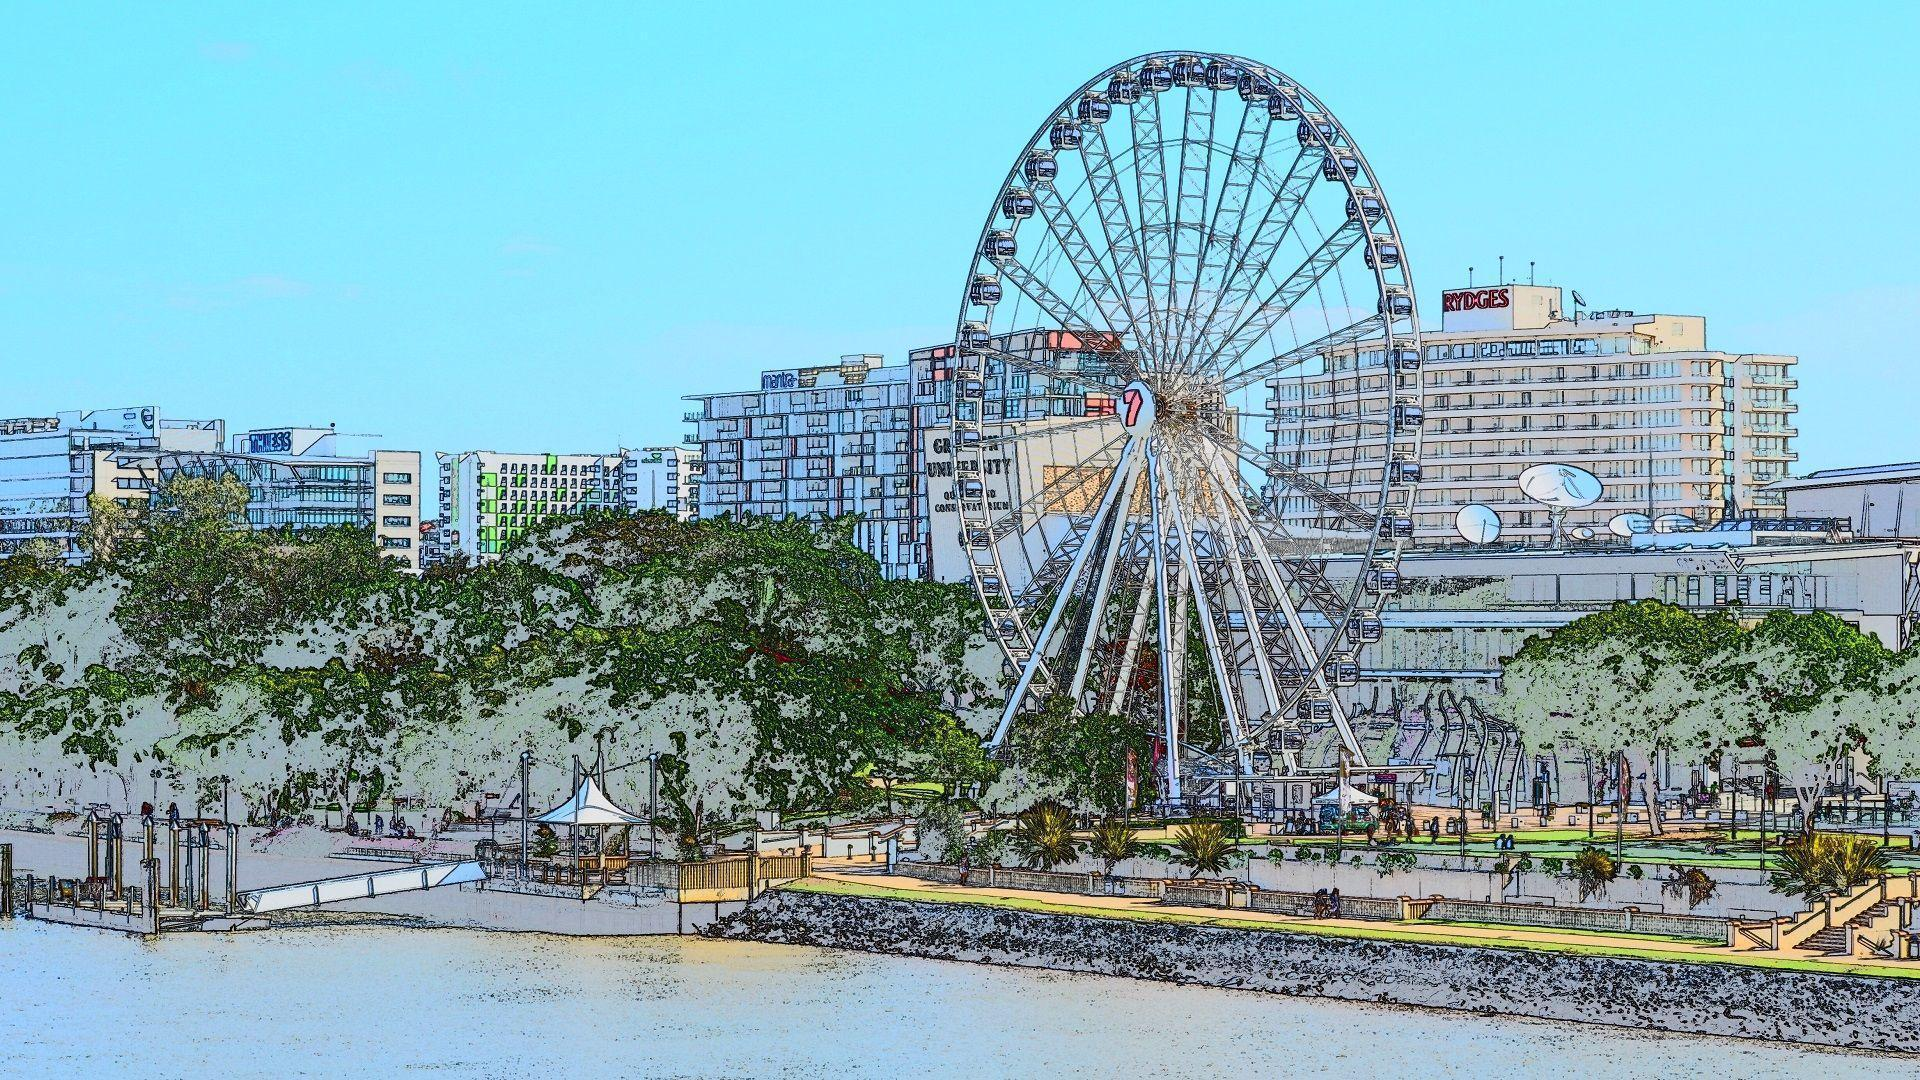 Brisbane South Bank - Big Wheel Full HD Wallpaper and Background ...